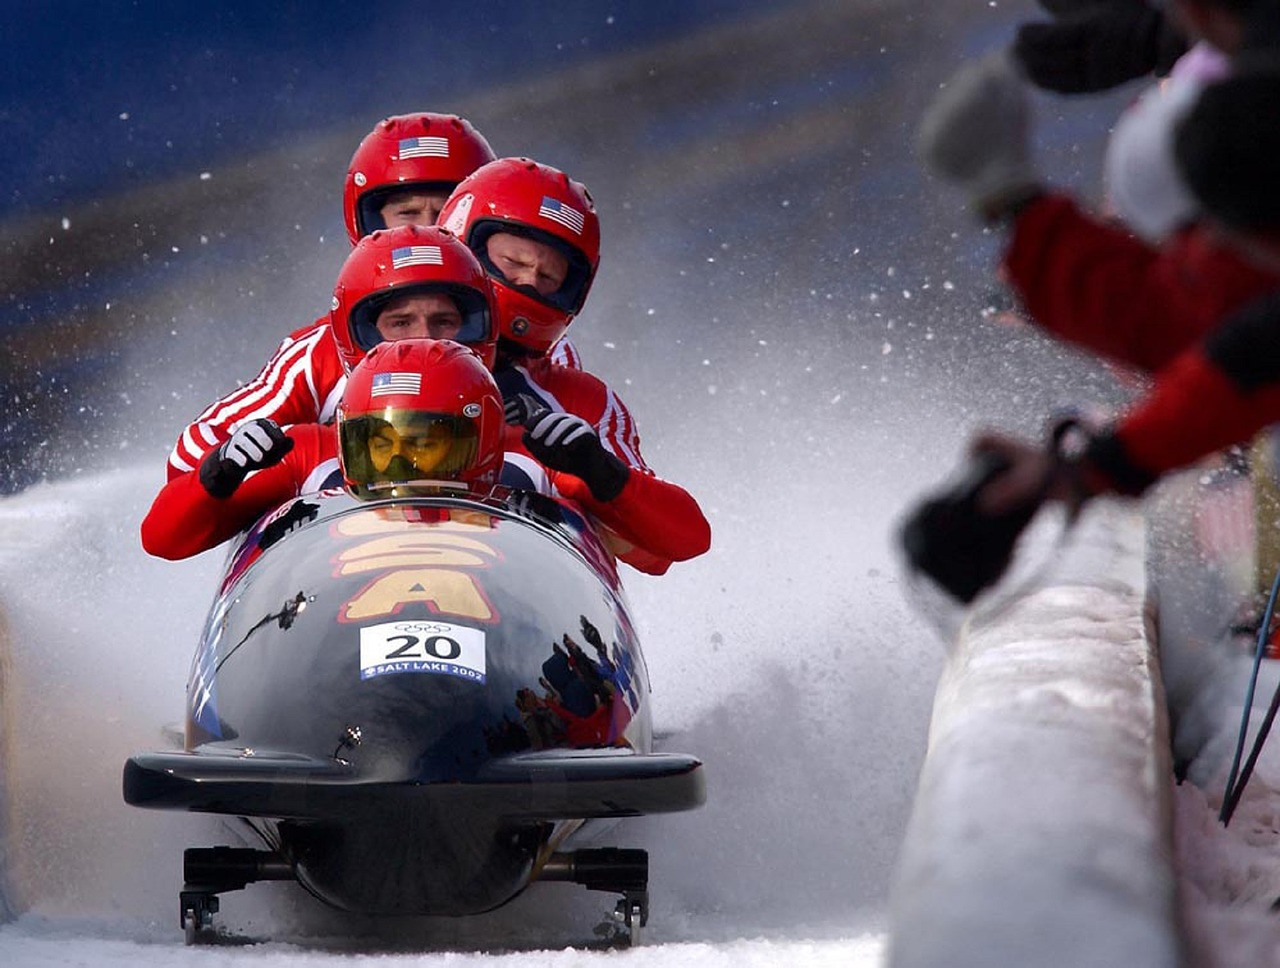 Sports spoit eyecatch bobsled